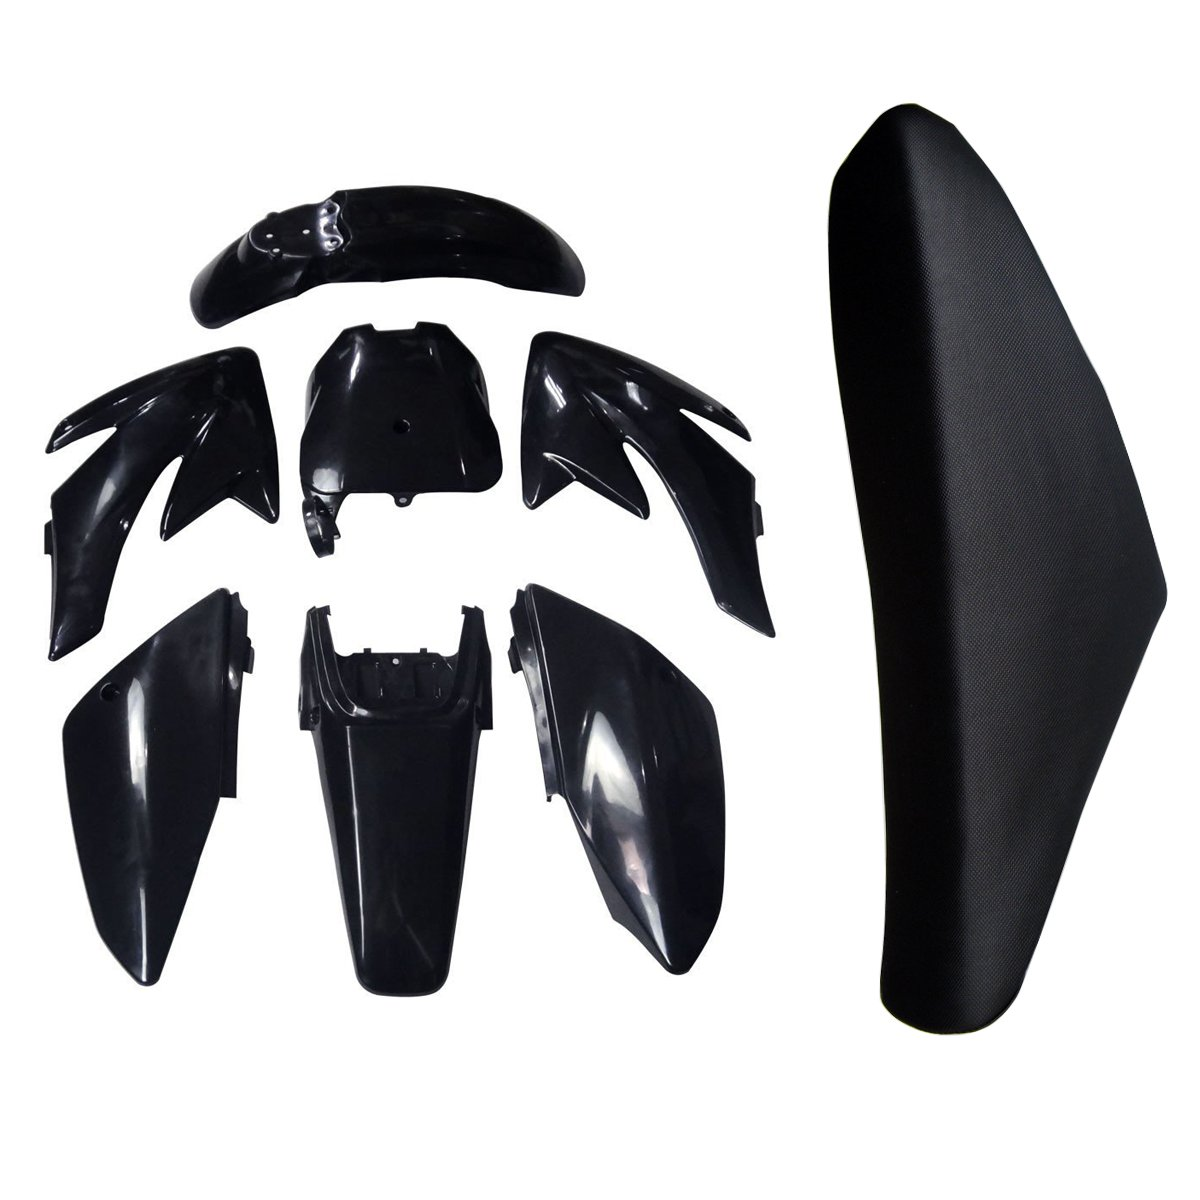 TDPRO Plastic Fairing Kit Fender Parts and Seat for Honda CRF70 CRF 70 Dirt Pit Bike (Black)